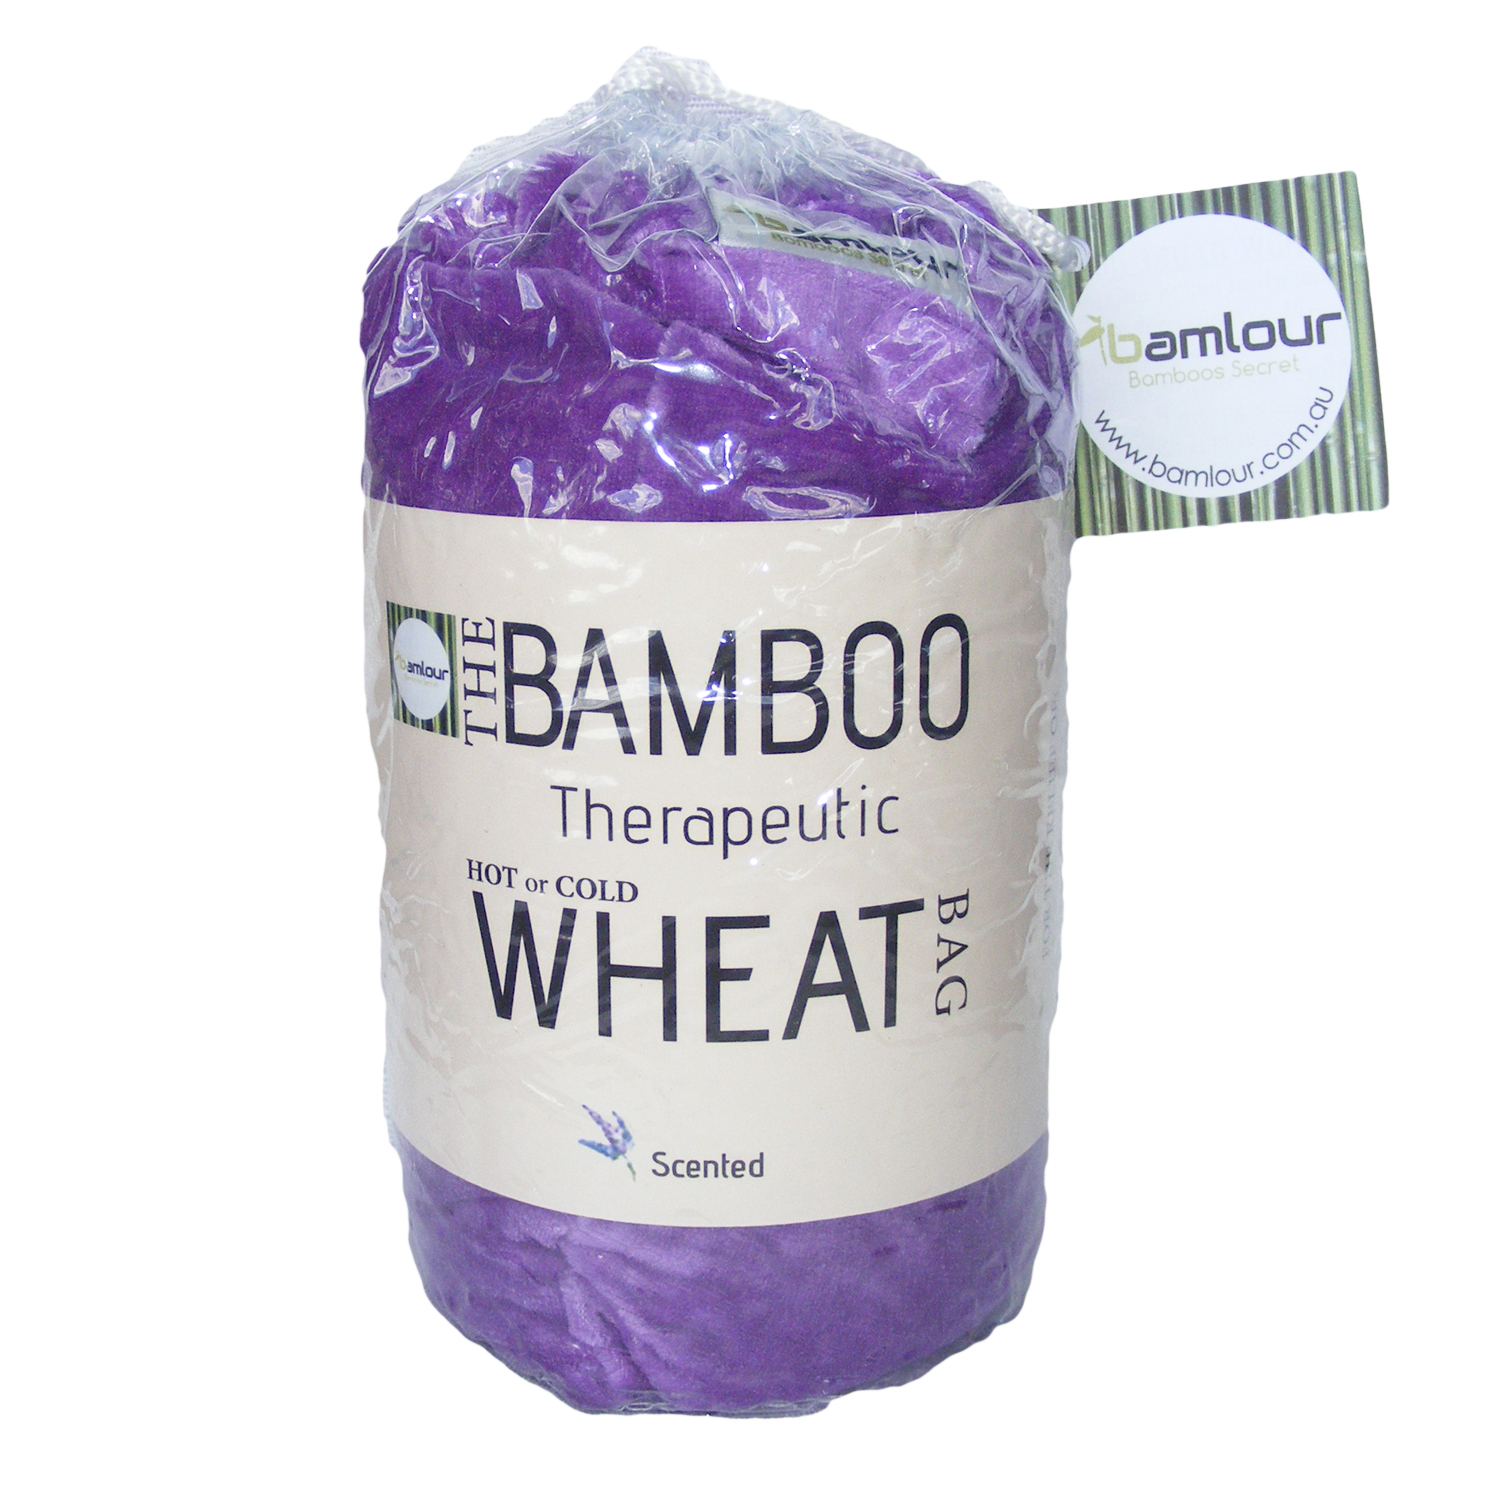 Wheat bag in packaging - hooked on bamboo